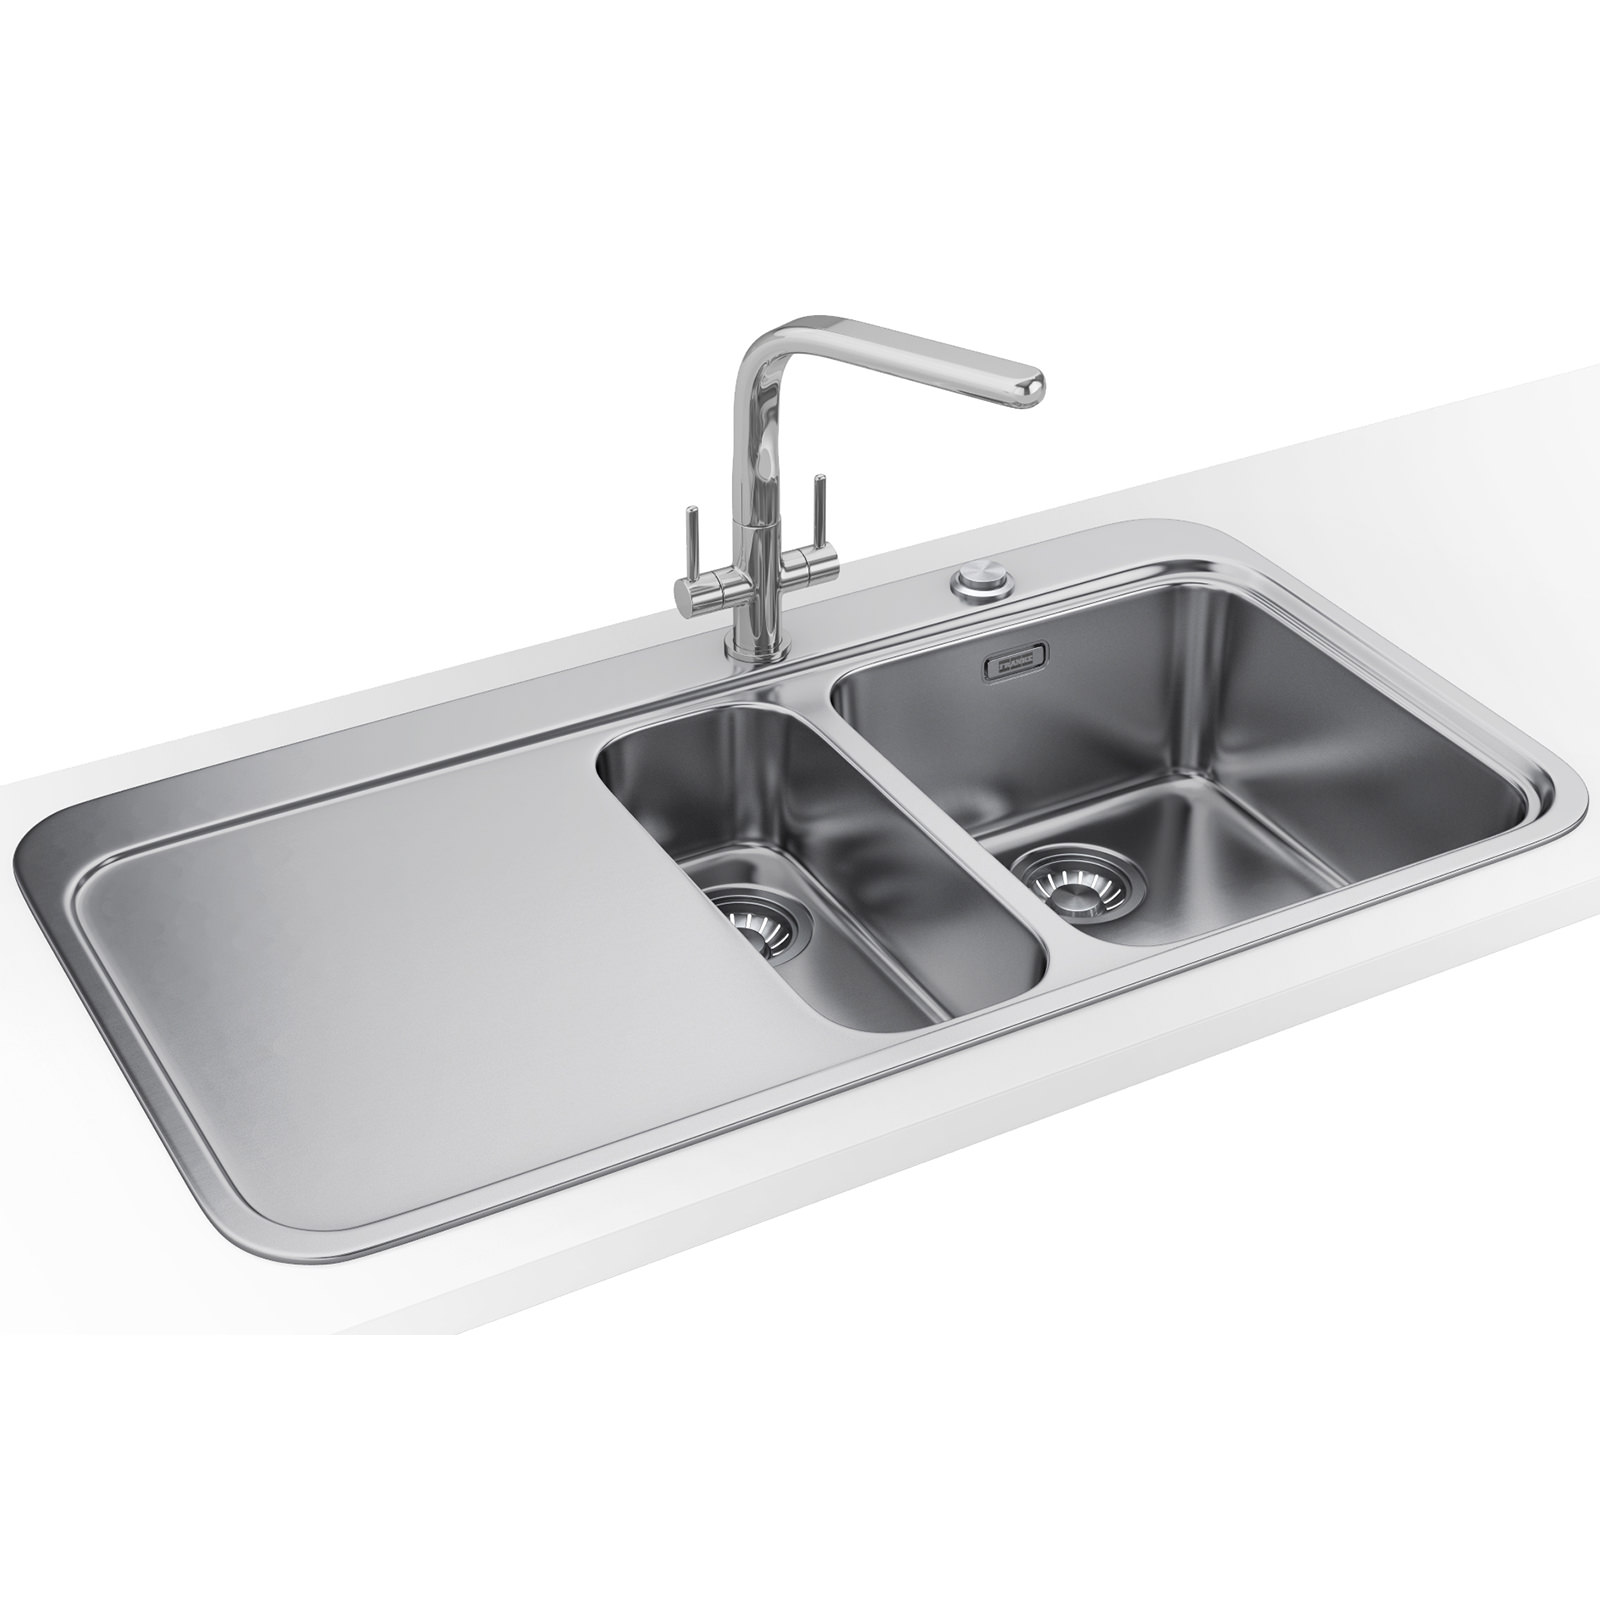 Franke Sinos Dp Snx 251 1 5 Bowl Stainless Steel Sink And Tap 1270364684